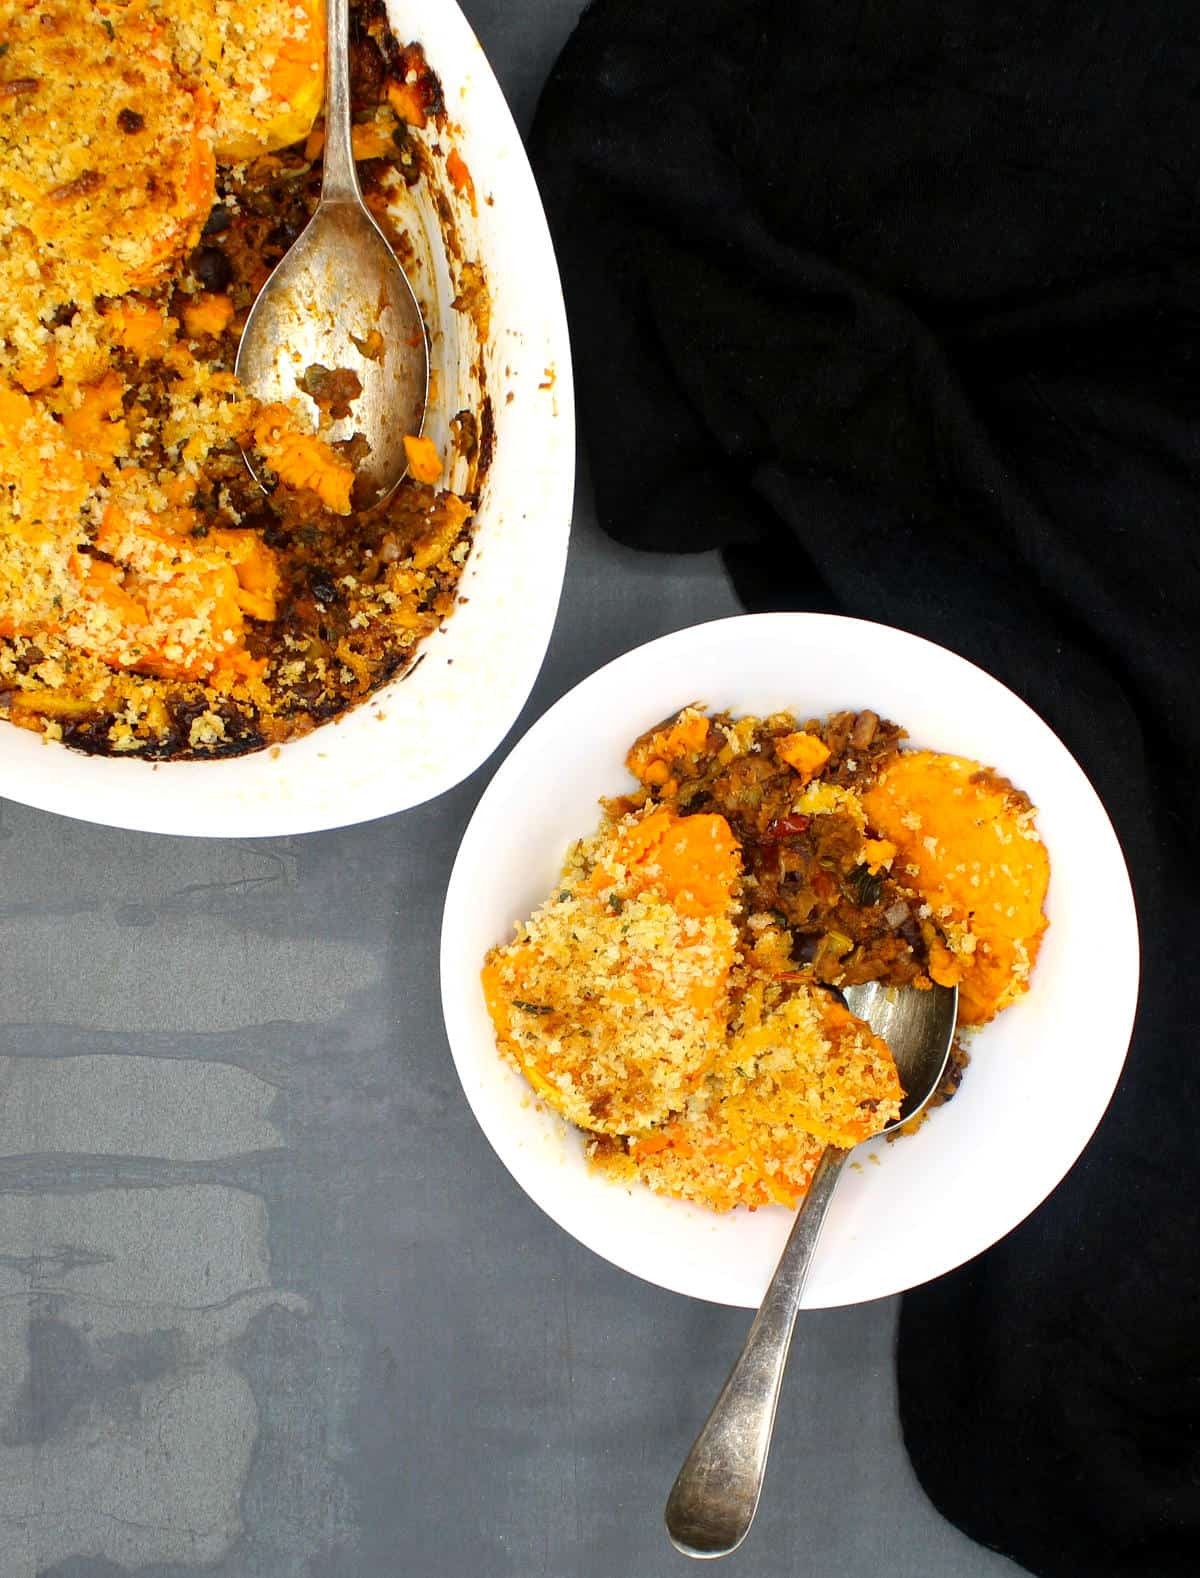 A vegan breakfast sweet potato chili bake in a white bowl and casserole dish with a black cheesecloth on gray background.